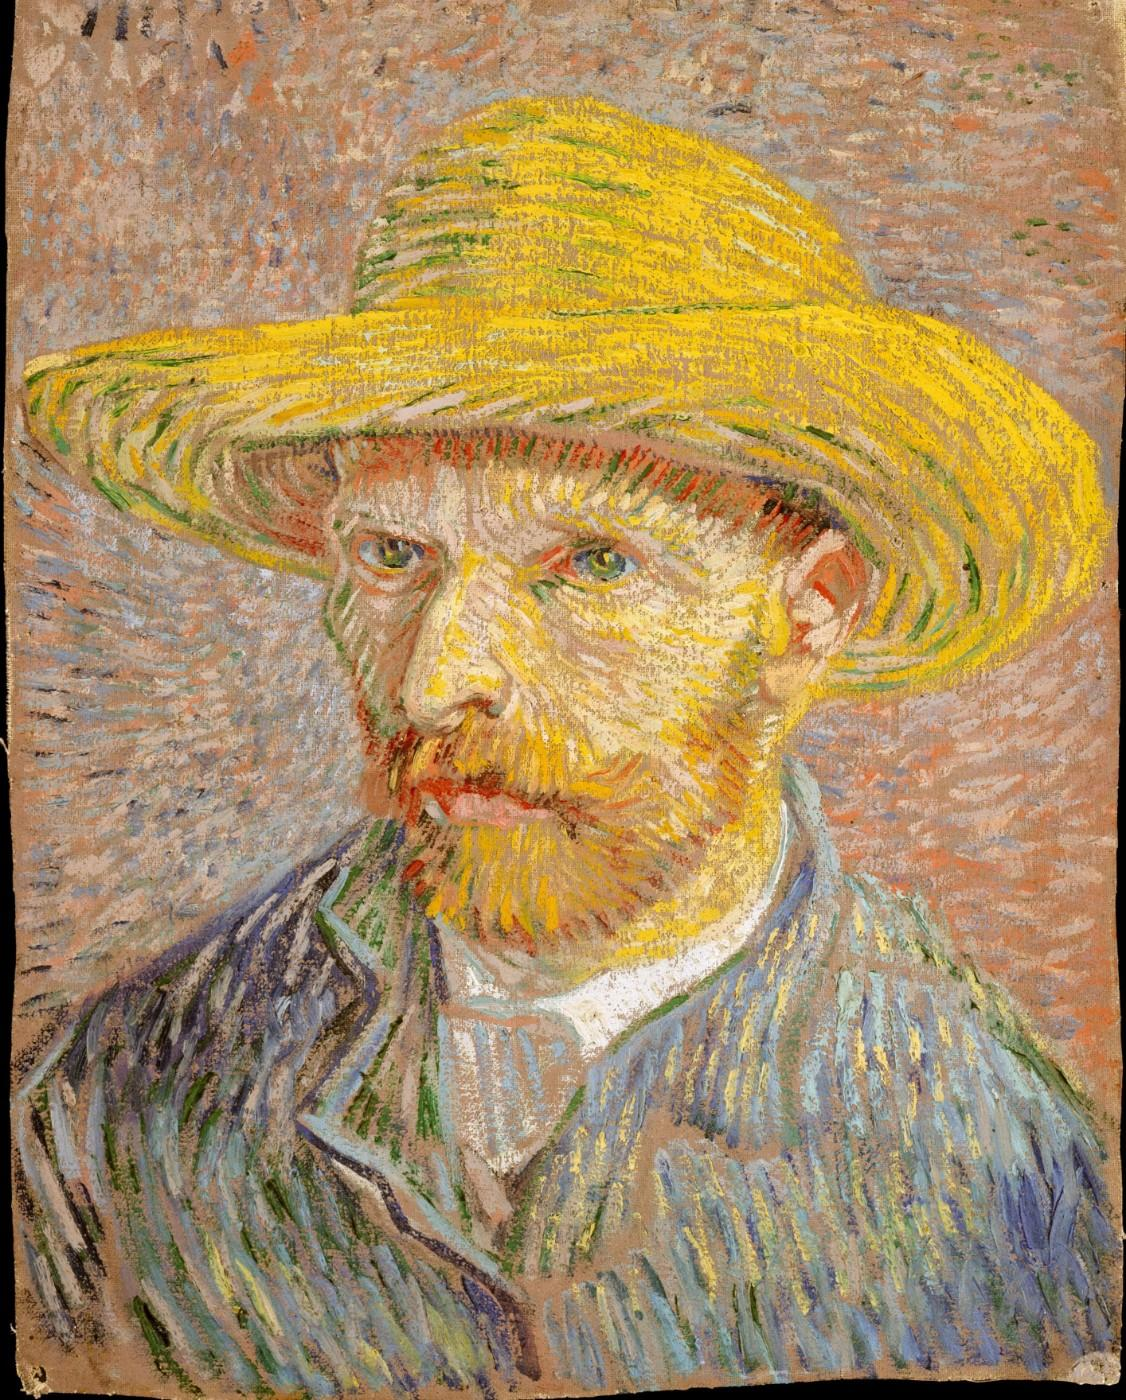 Vincent van Gogh, Self-Portrait with a Straw Hat